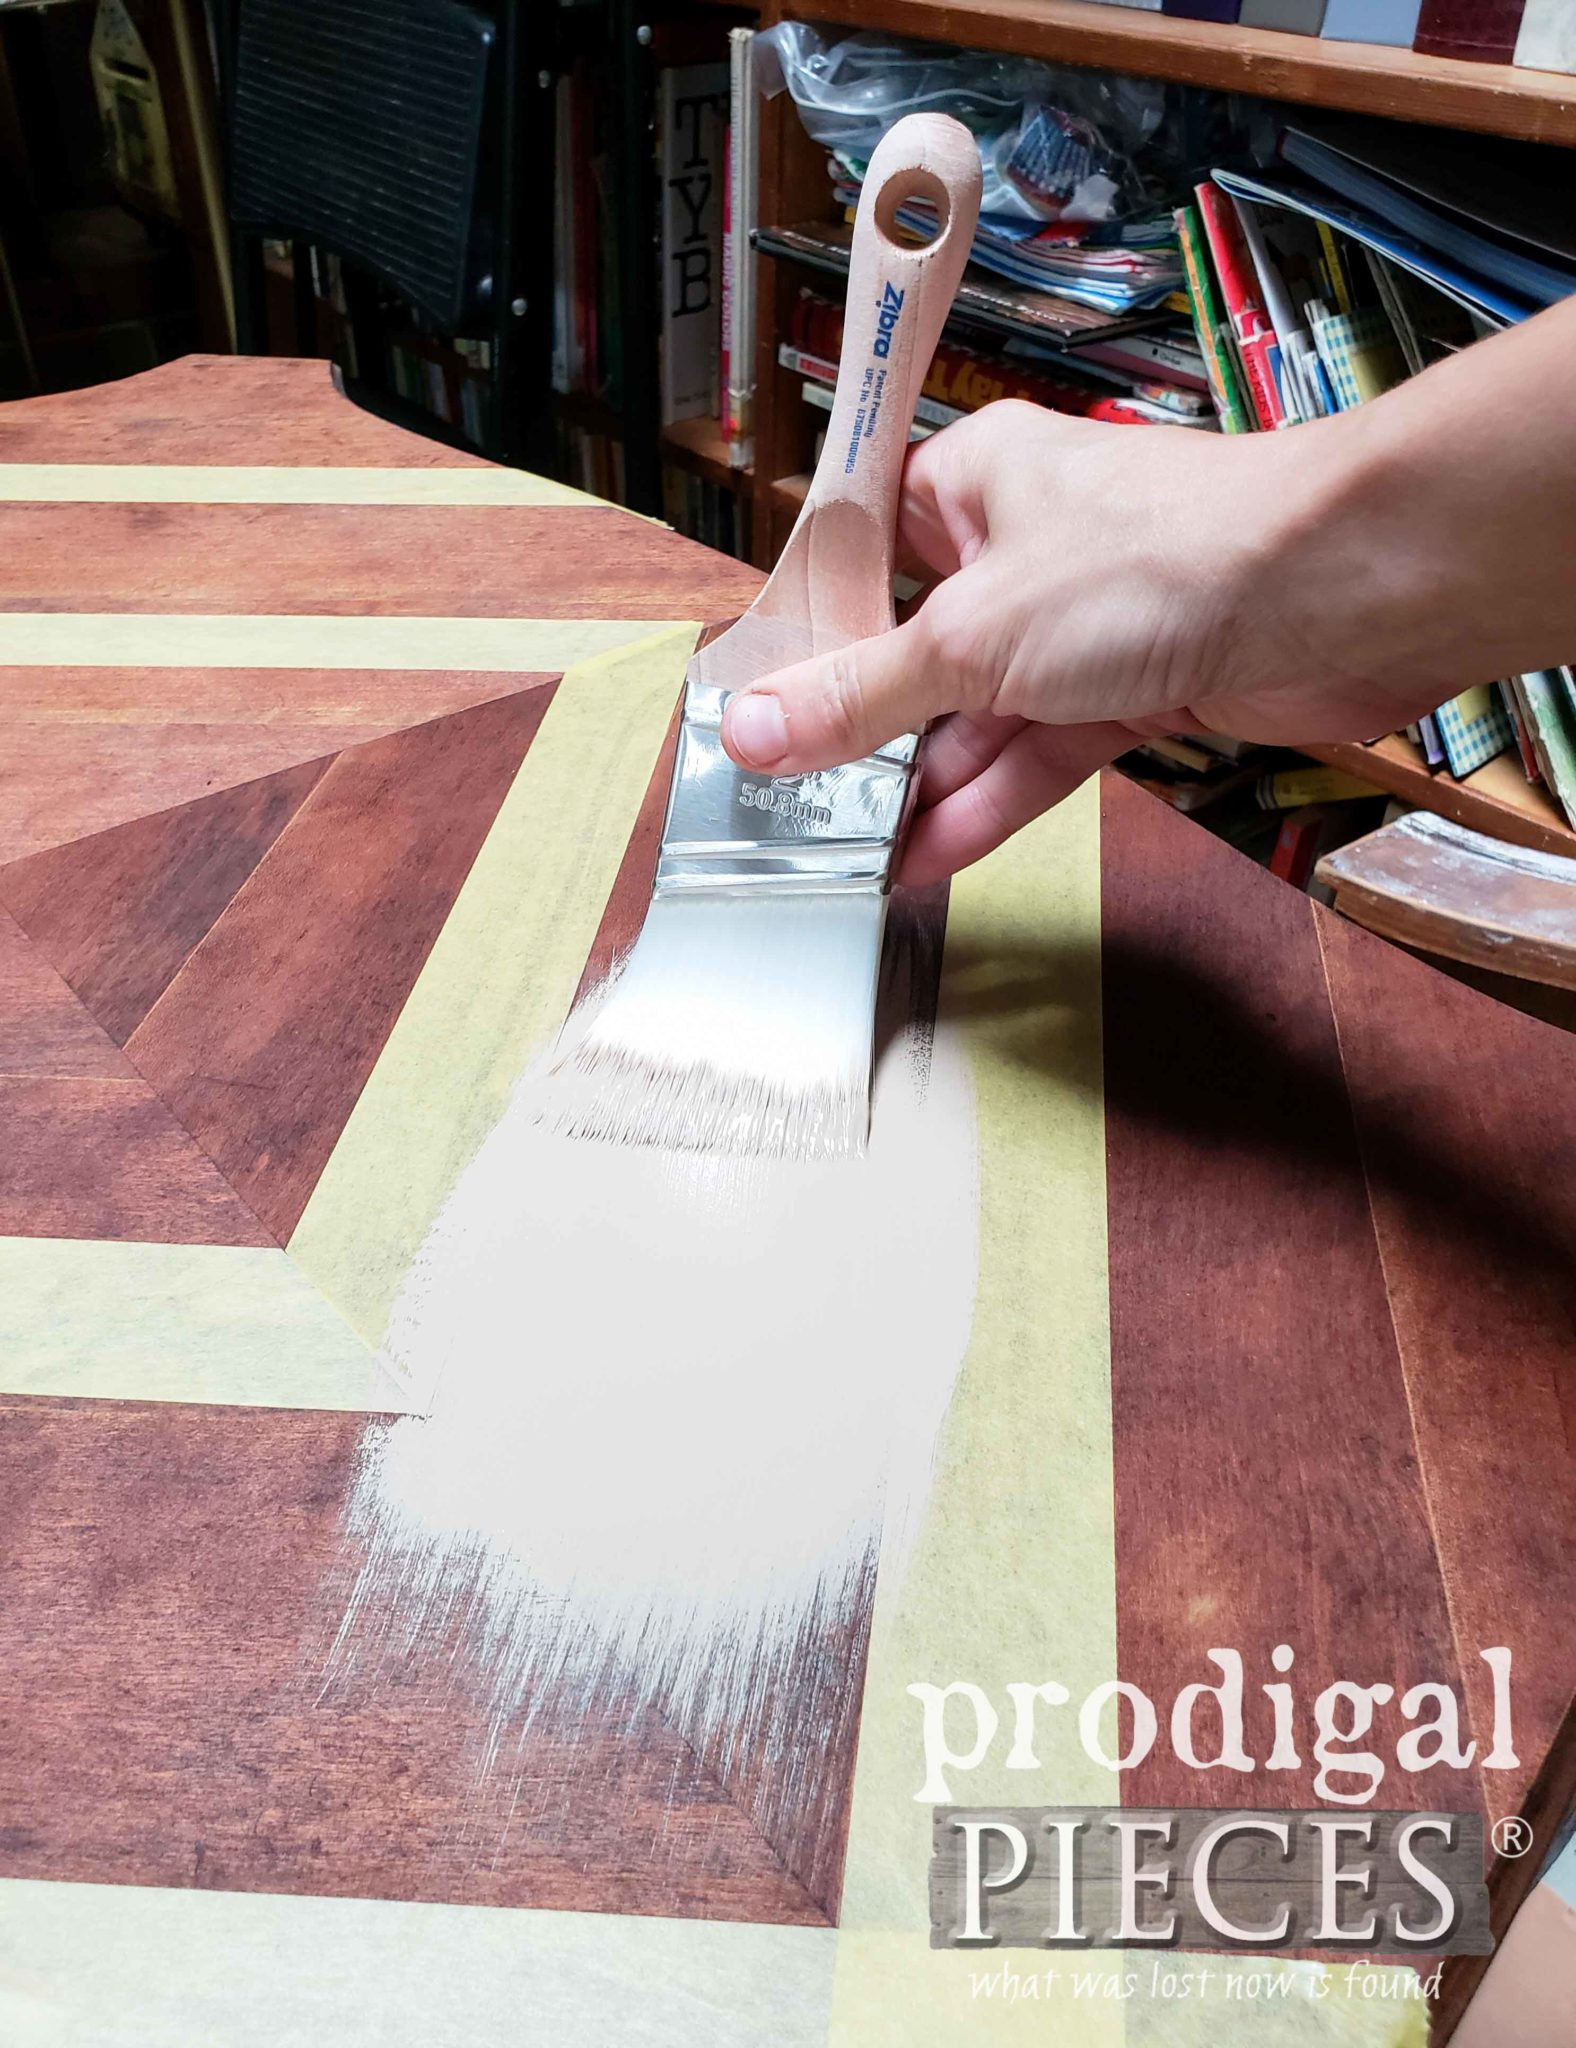 Zibra Stubby Paint Brush for Furniture by Prodigal Pieces | prodigalpieces.com